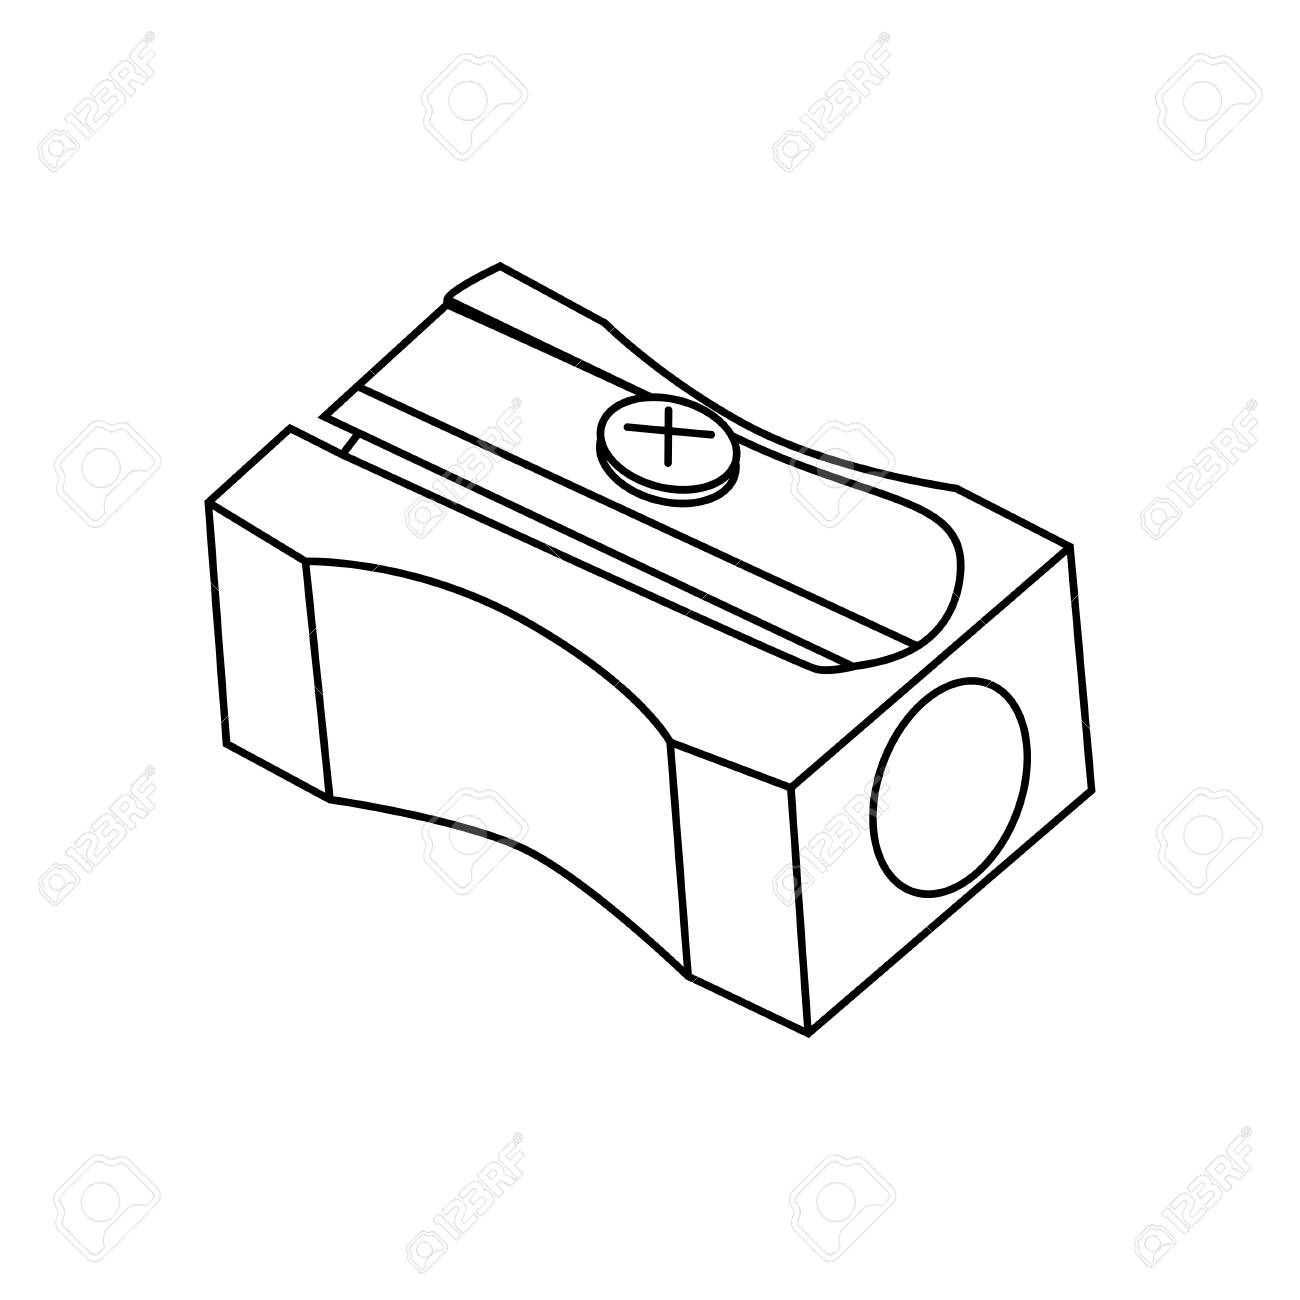 Contour Objects Stationery Pencil Sharpener Isoleted On White Stock Vector